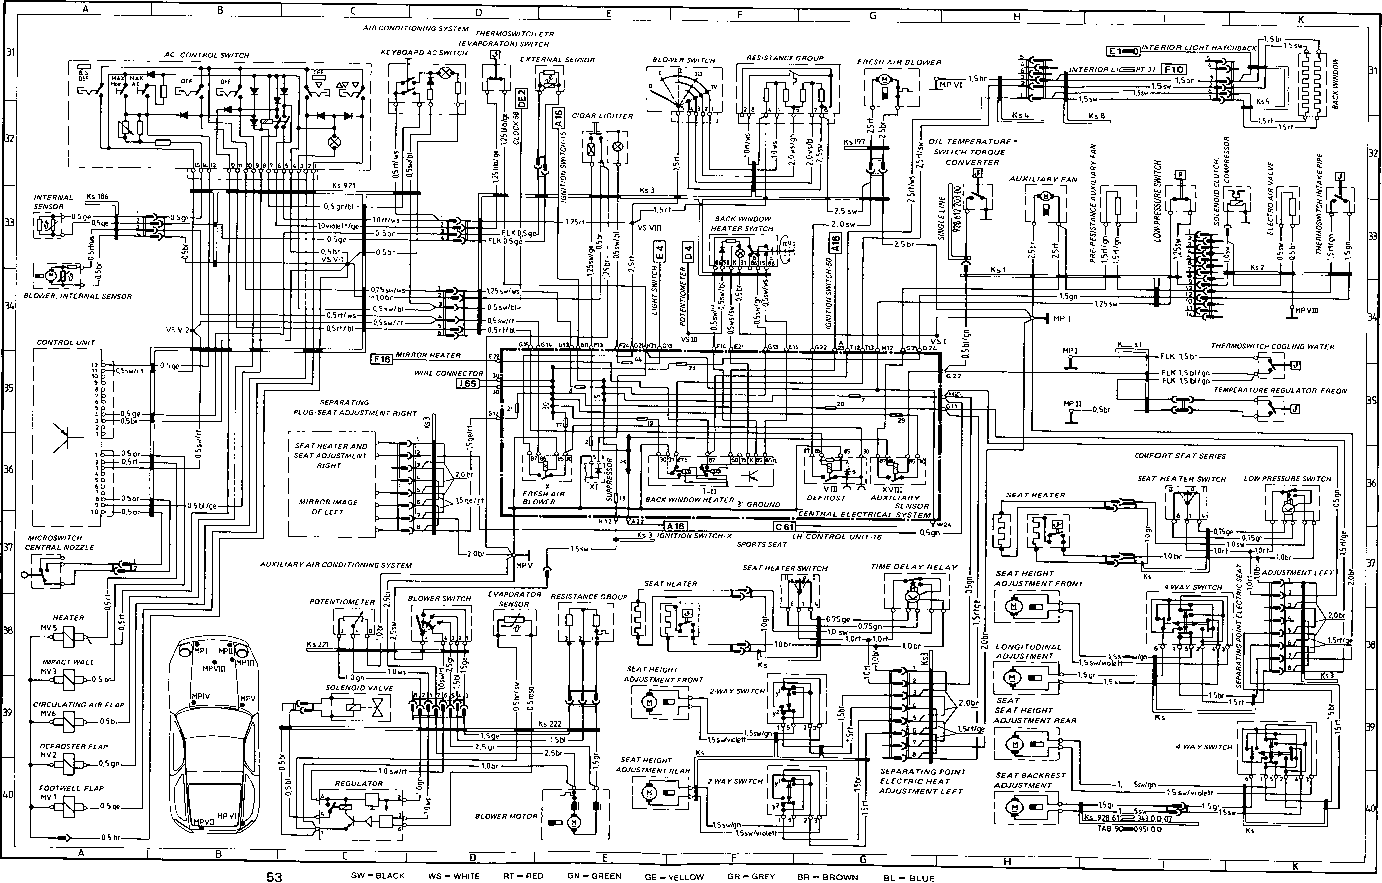 H 1 on porsche 911 wiring diagram